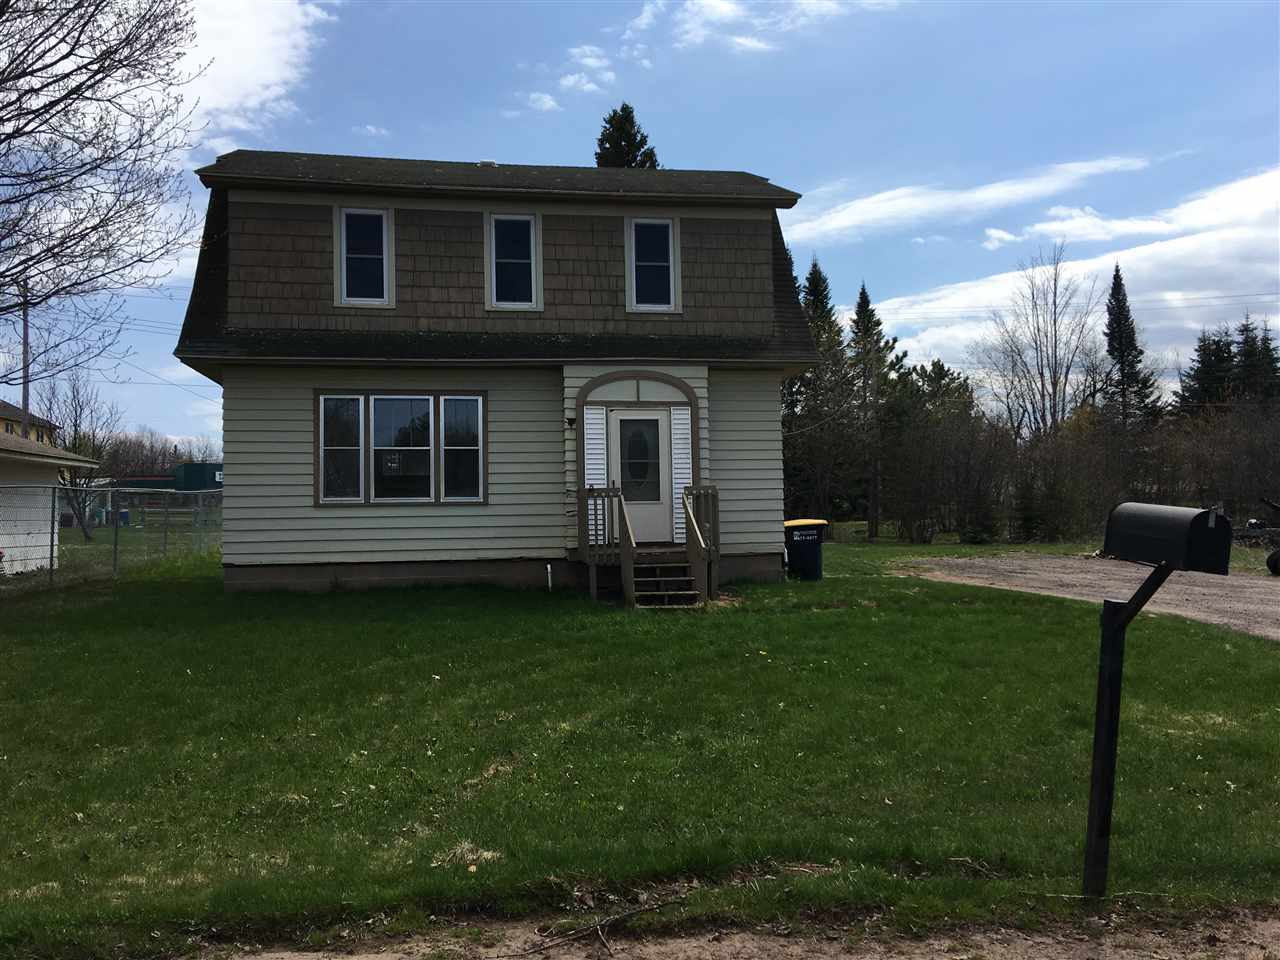 Mls 1101516 409 florence ironwood mi 49938 for Upper michigan real estate zillow